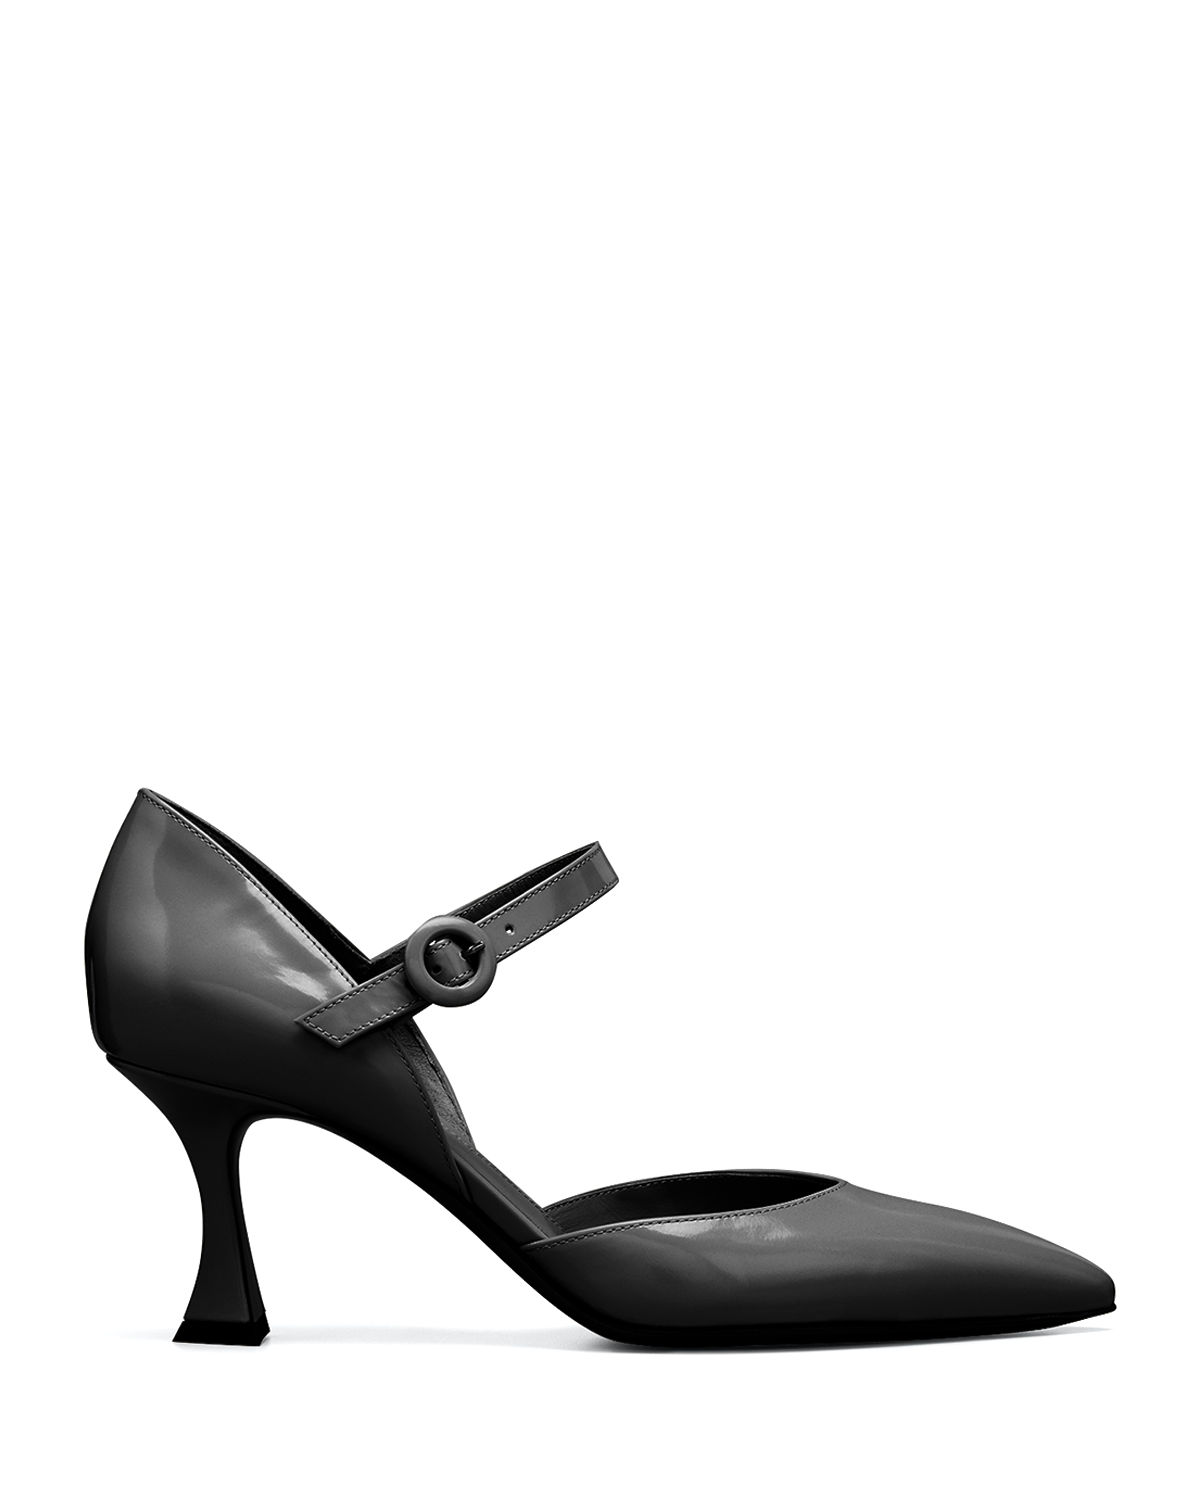 70mm Leather Mary Jane Pumps